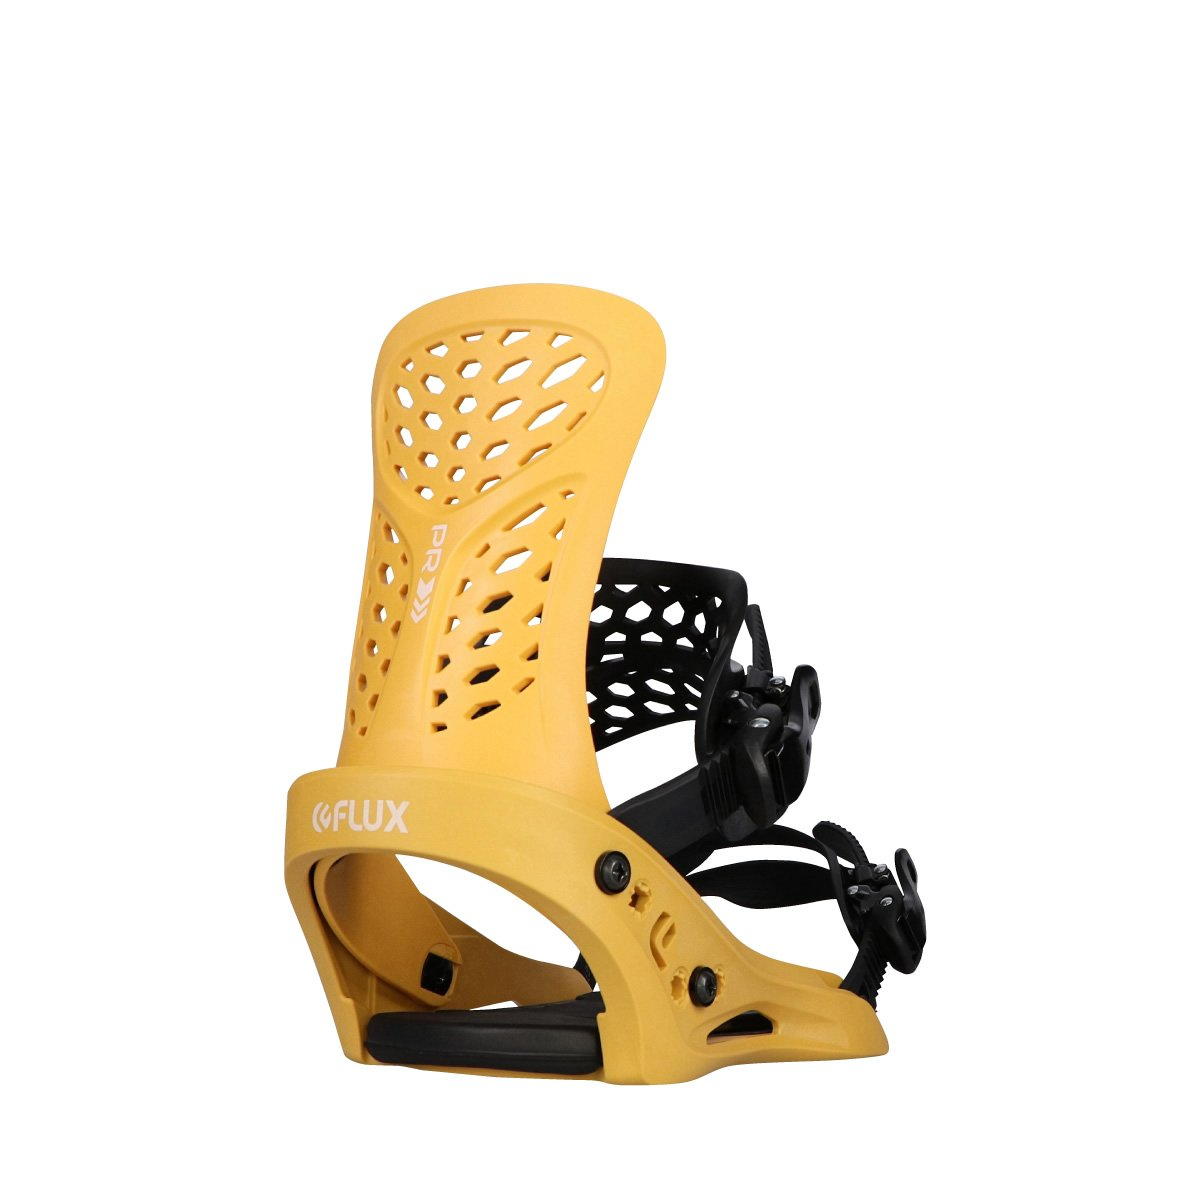 2021 Flux PR Men's Snowboard Bindings